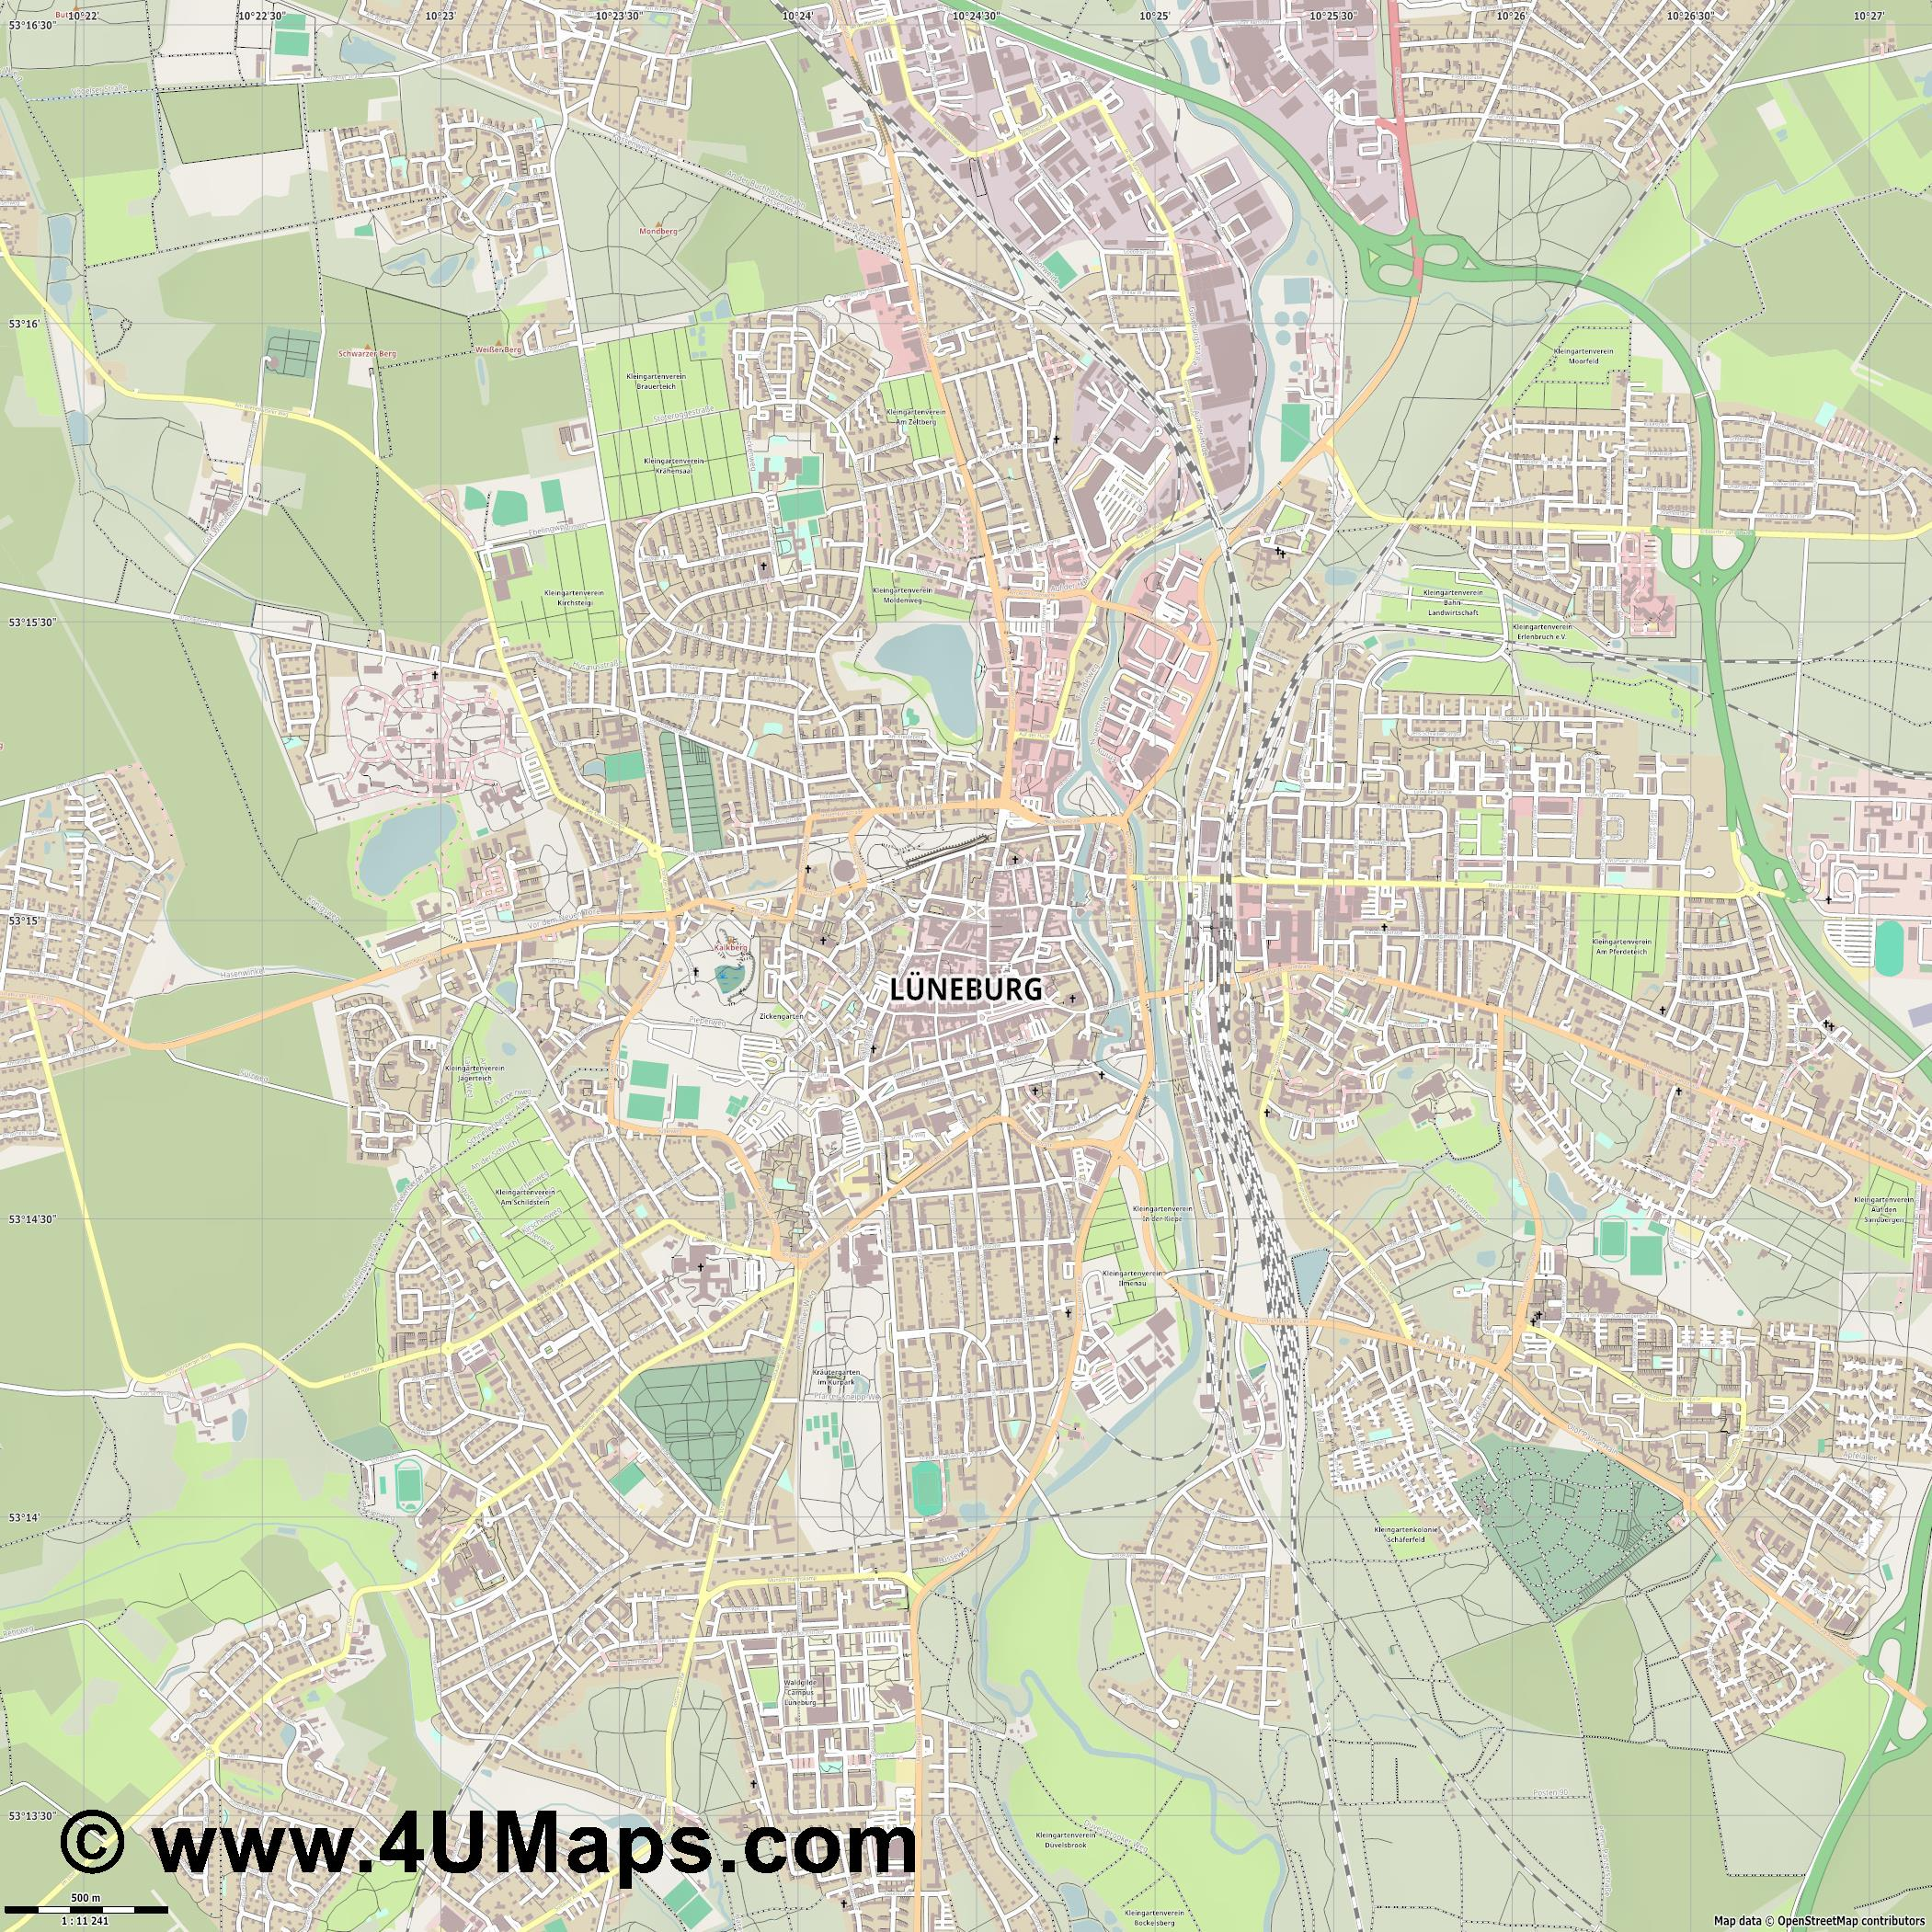 Lüneburg Lunebourg Luneburgo  jpg ultra high detail preview vector city map